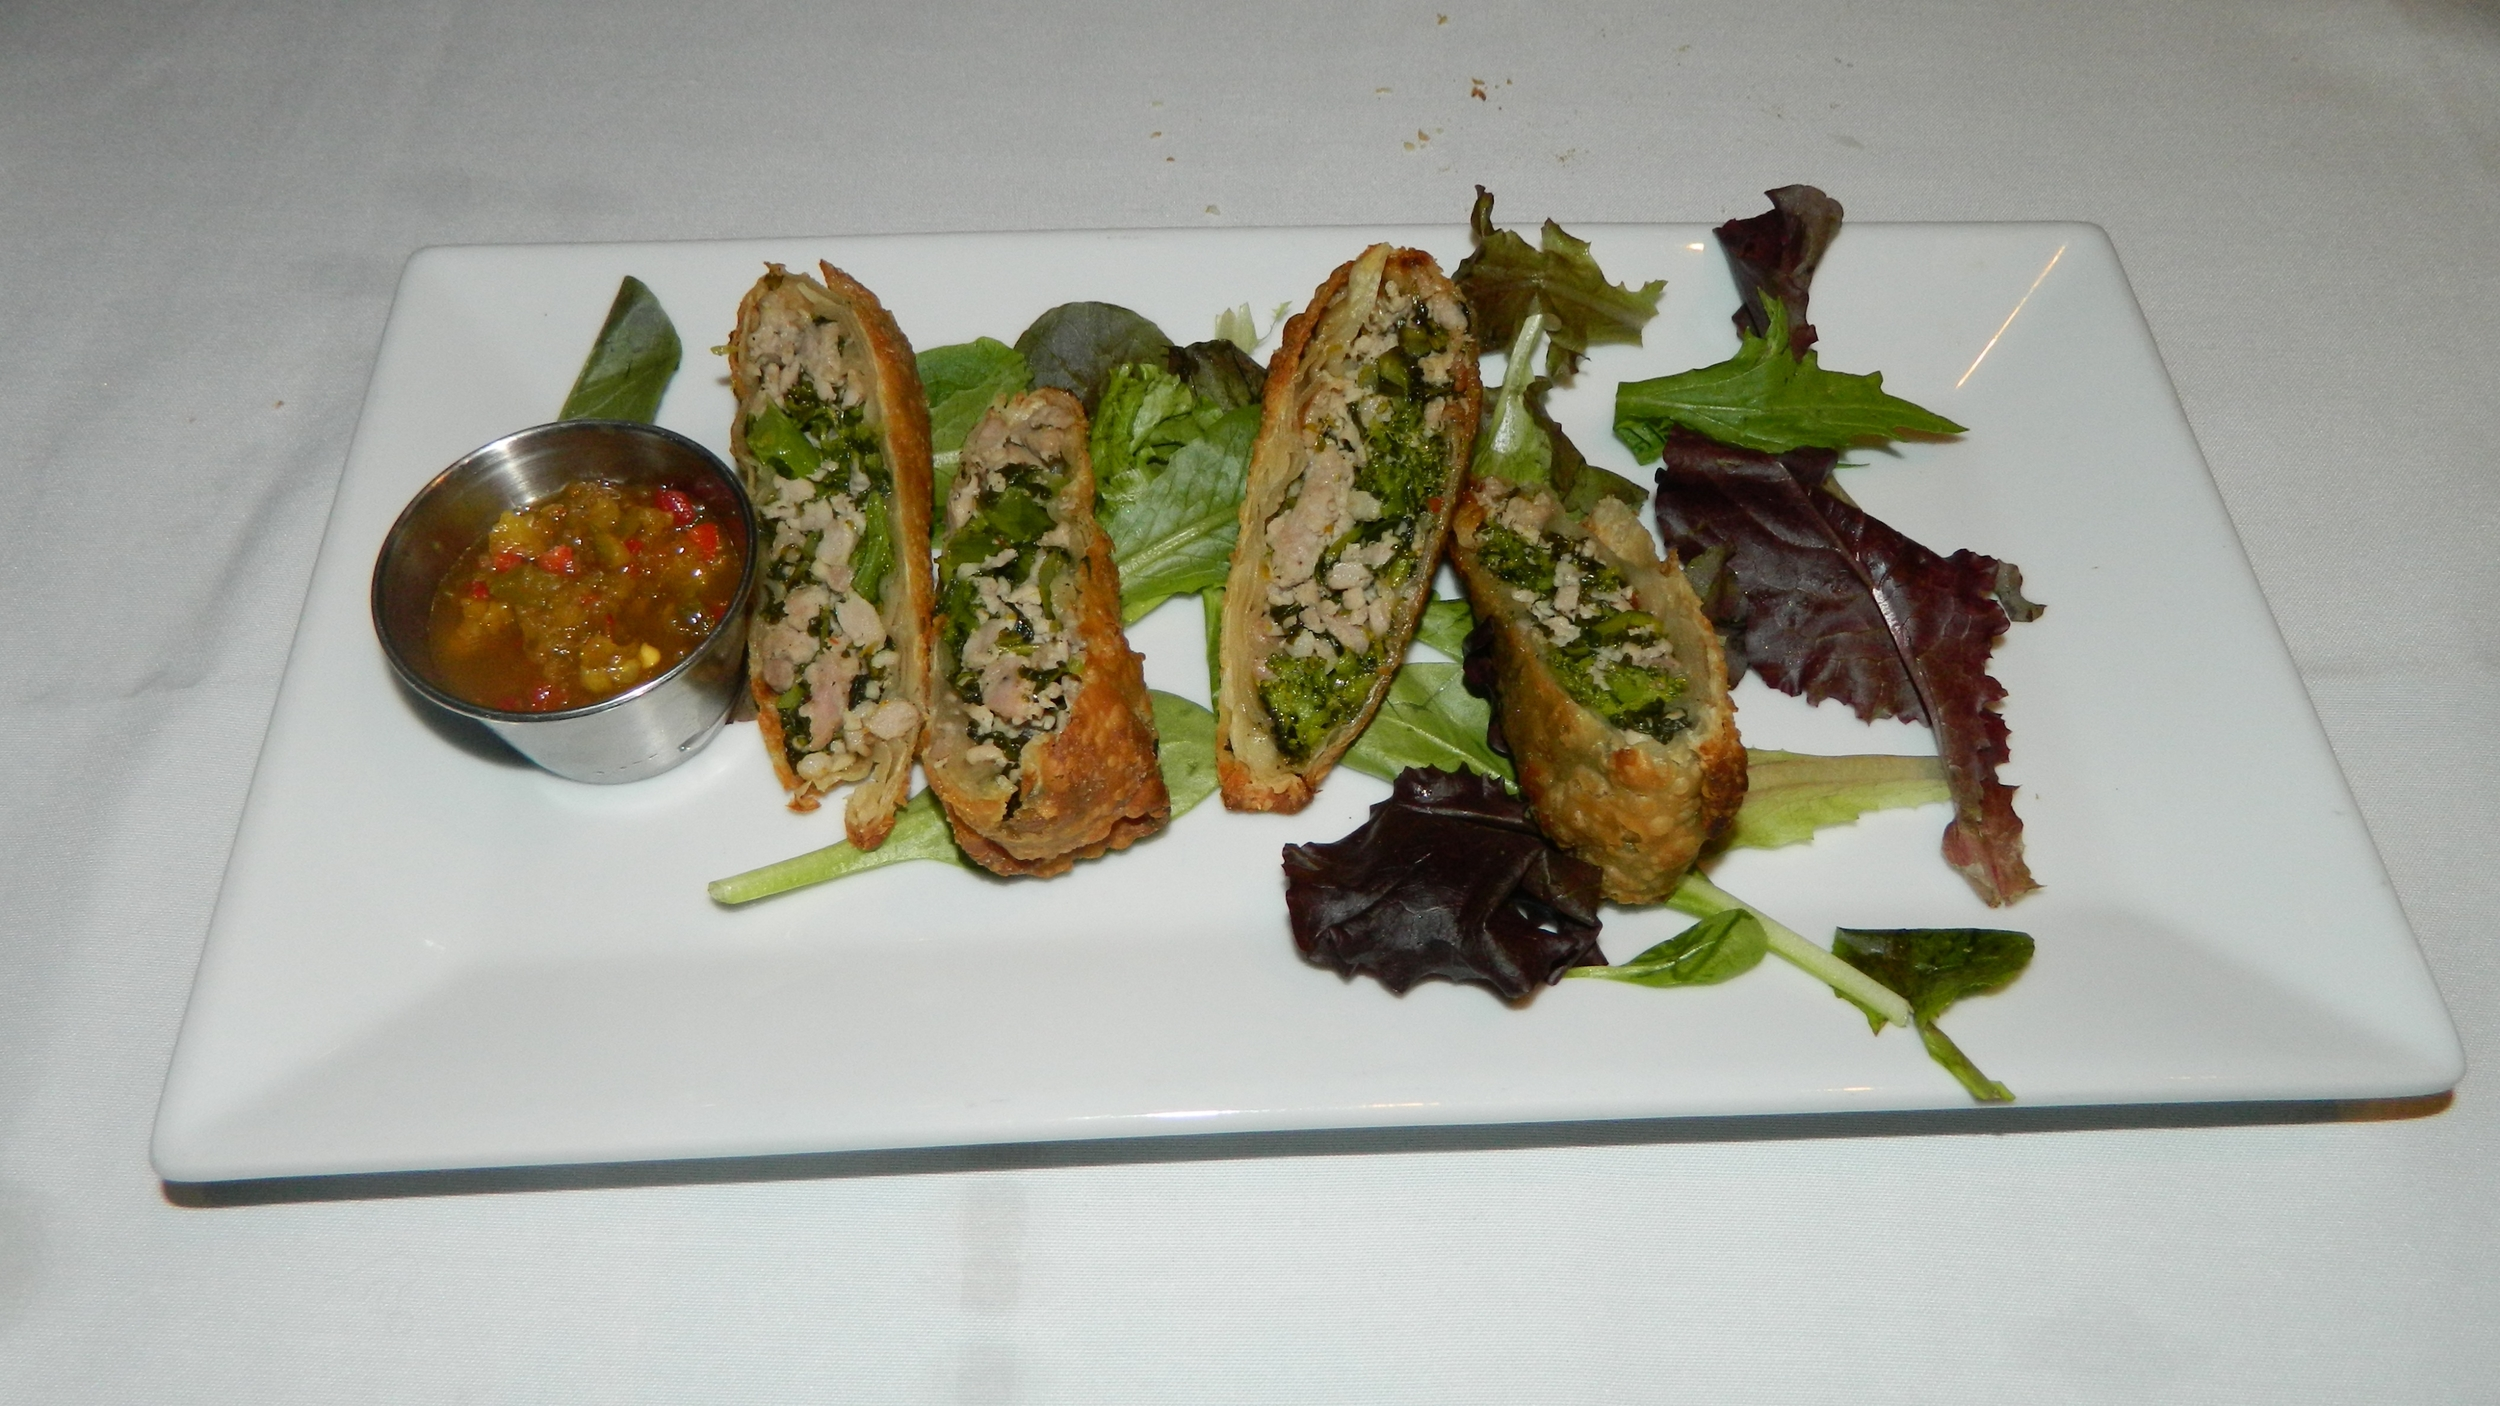 The broccoli rabe and sausage egg rolls with spicy Italian chimichurri sauce is an excellent appetizer.